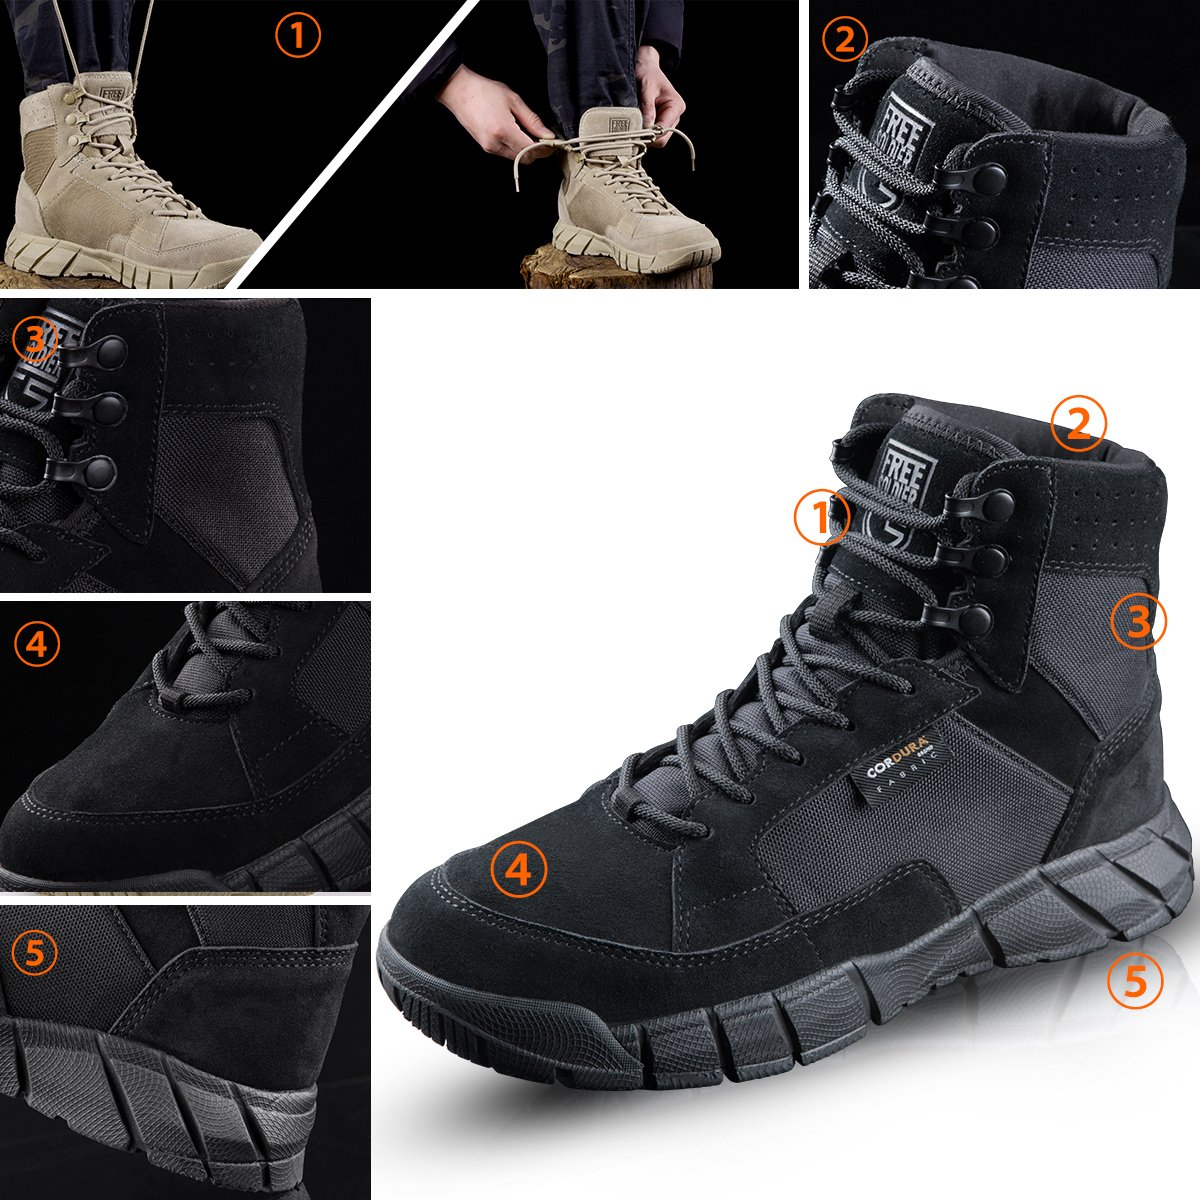 FREE SOLDIER Men's Tactical Boots 6'' inch Lightweight Military Boots for Hiking Work Boots Breathable Desert Boots (Black, 12.5) by FREE SOLDIER (Image #3)